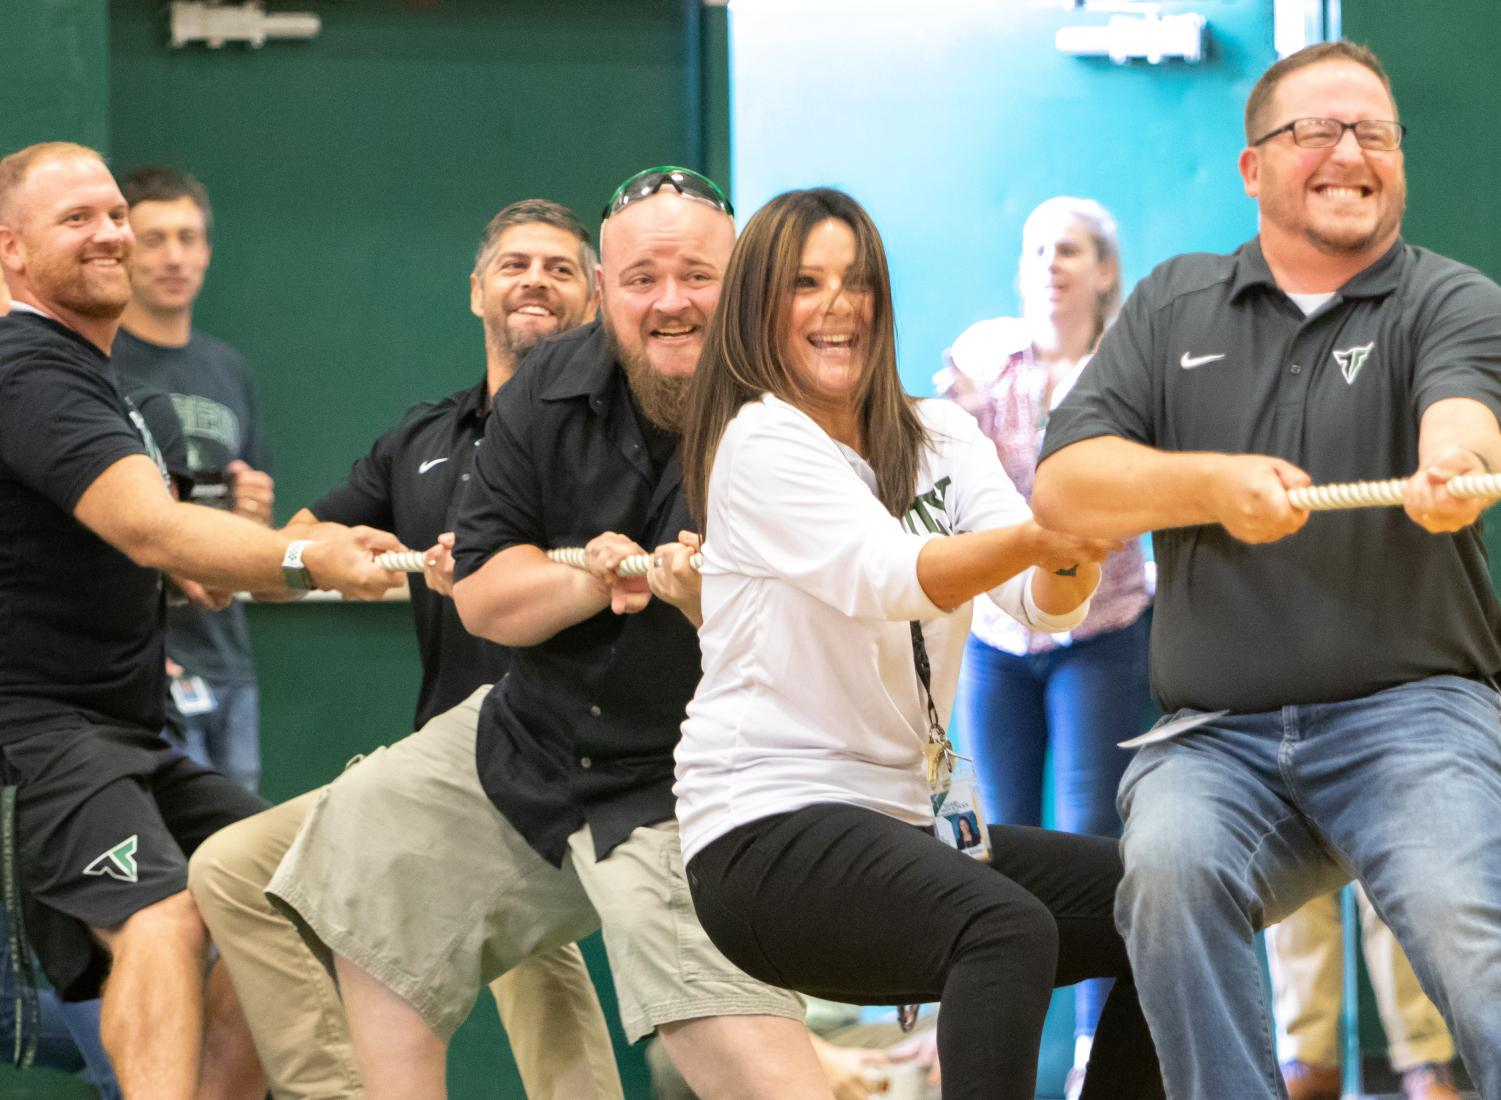 Principal Brian Bailey stacks the administrative team in the tug of war. In addition to vice principals Angelita Miller and Tyler Davila, he got a little help from wrestling coach Kaleb Reese and head football coach John Kemper.